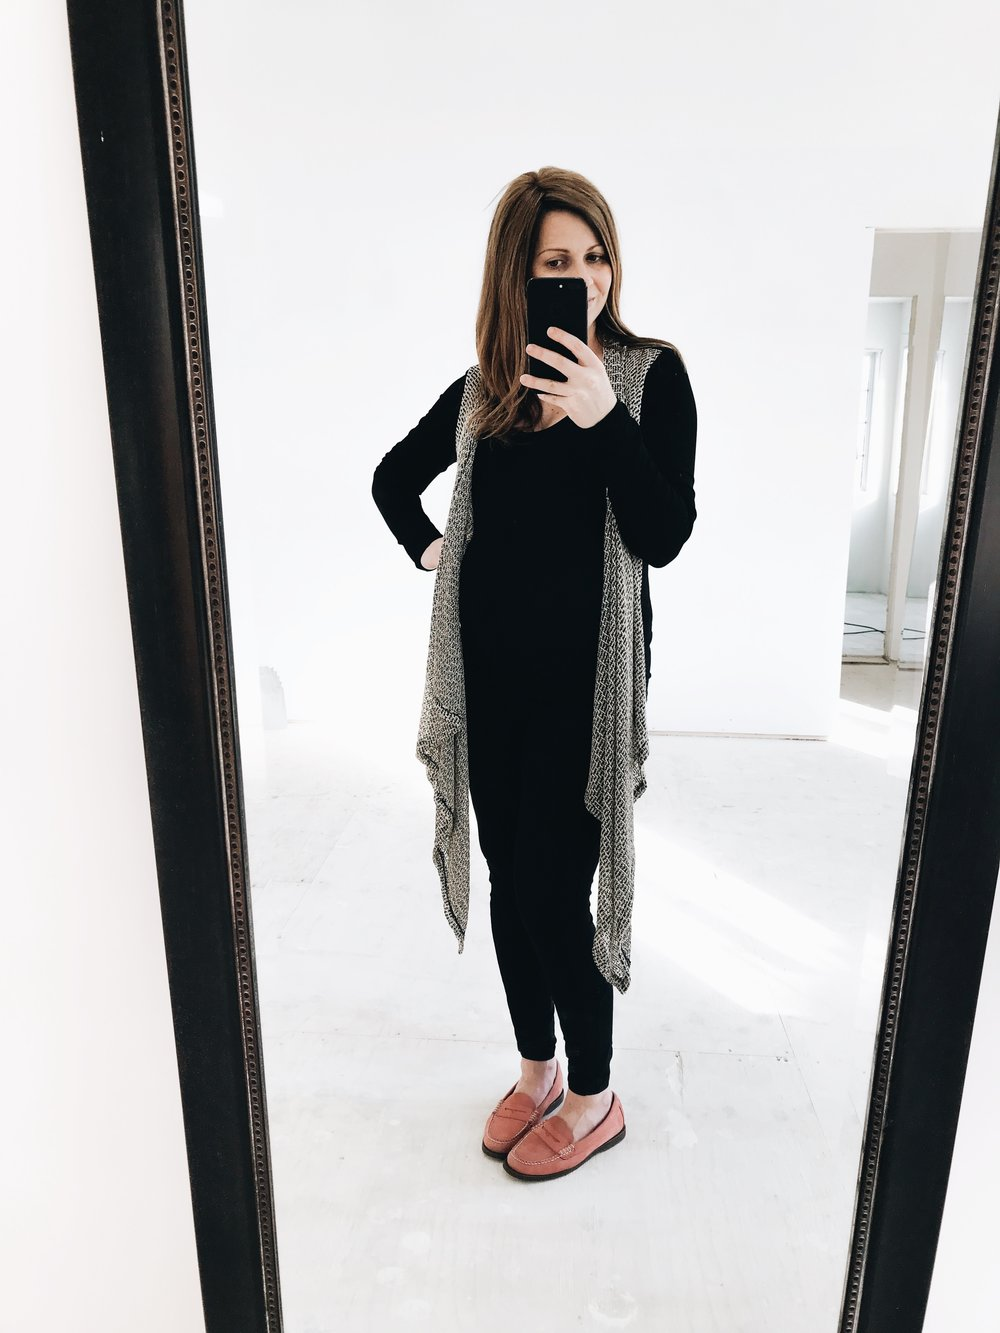 Olian Maternity Wear. How to dress for work when nine months pregnant. #9monthspregnant #38weekspregnant